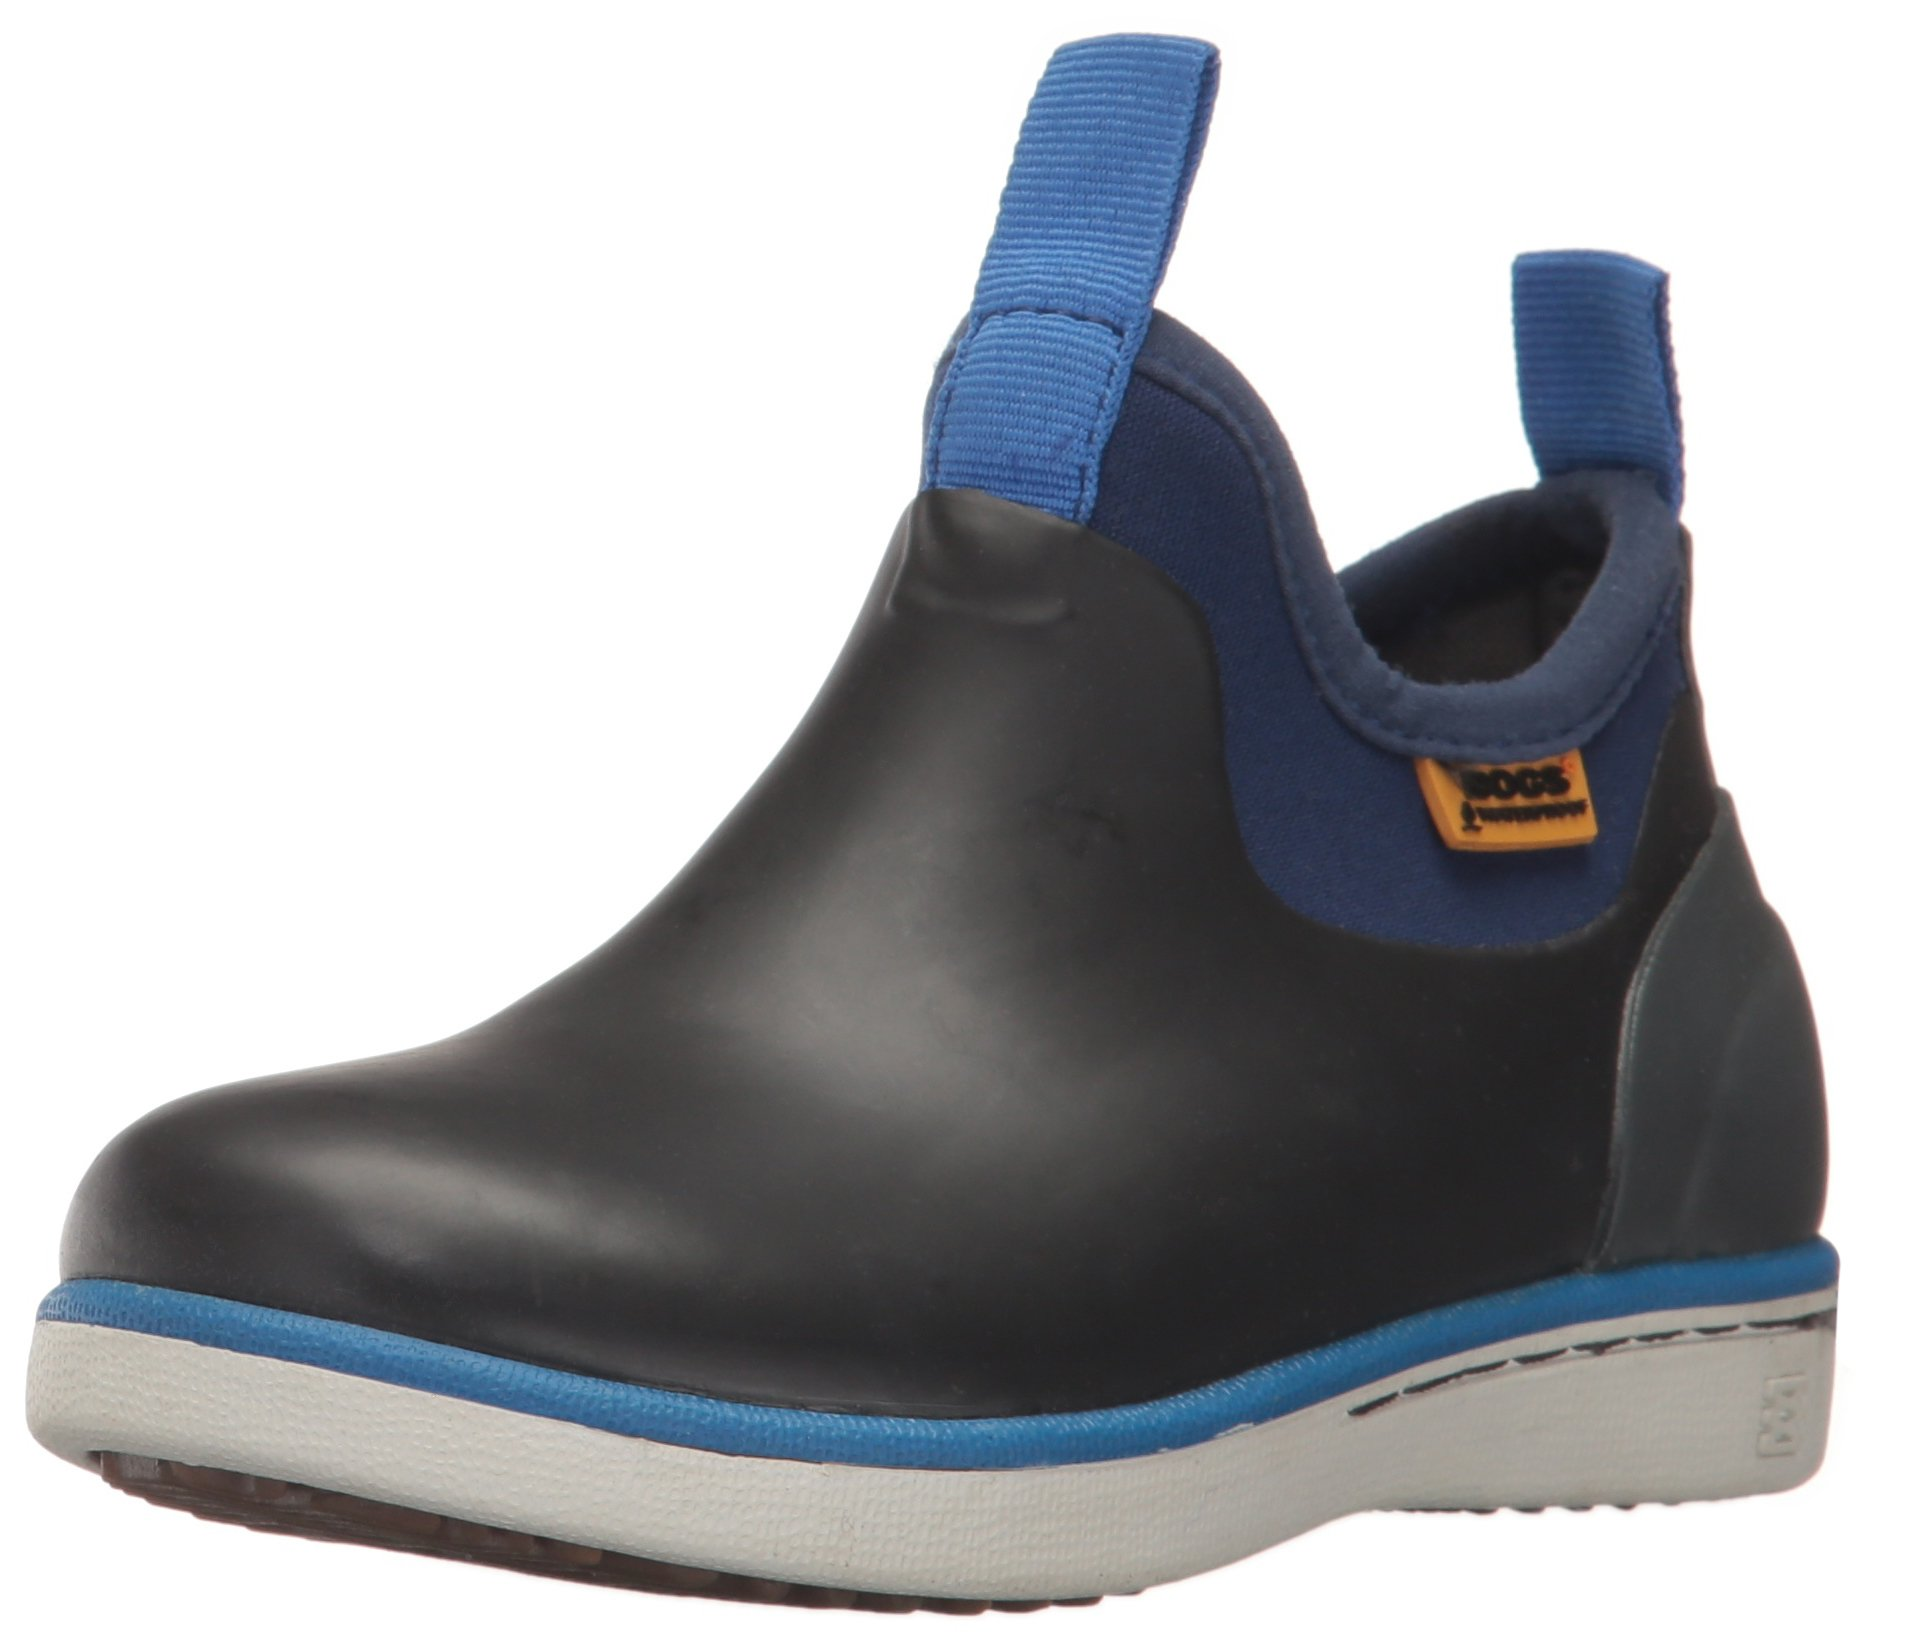 Bogs Riley Kids Slip-On Waterproof Low Top Rain Boot for Boys and Girls, Black/Multi, 9 M US Toddler